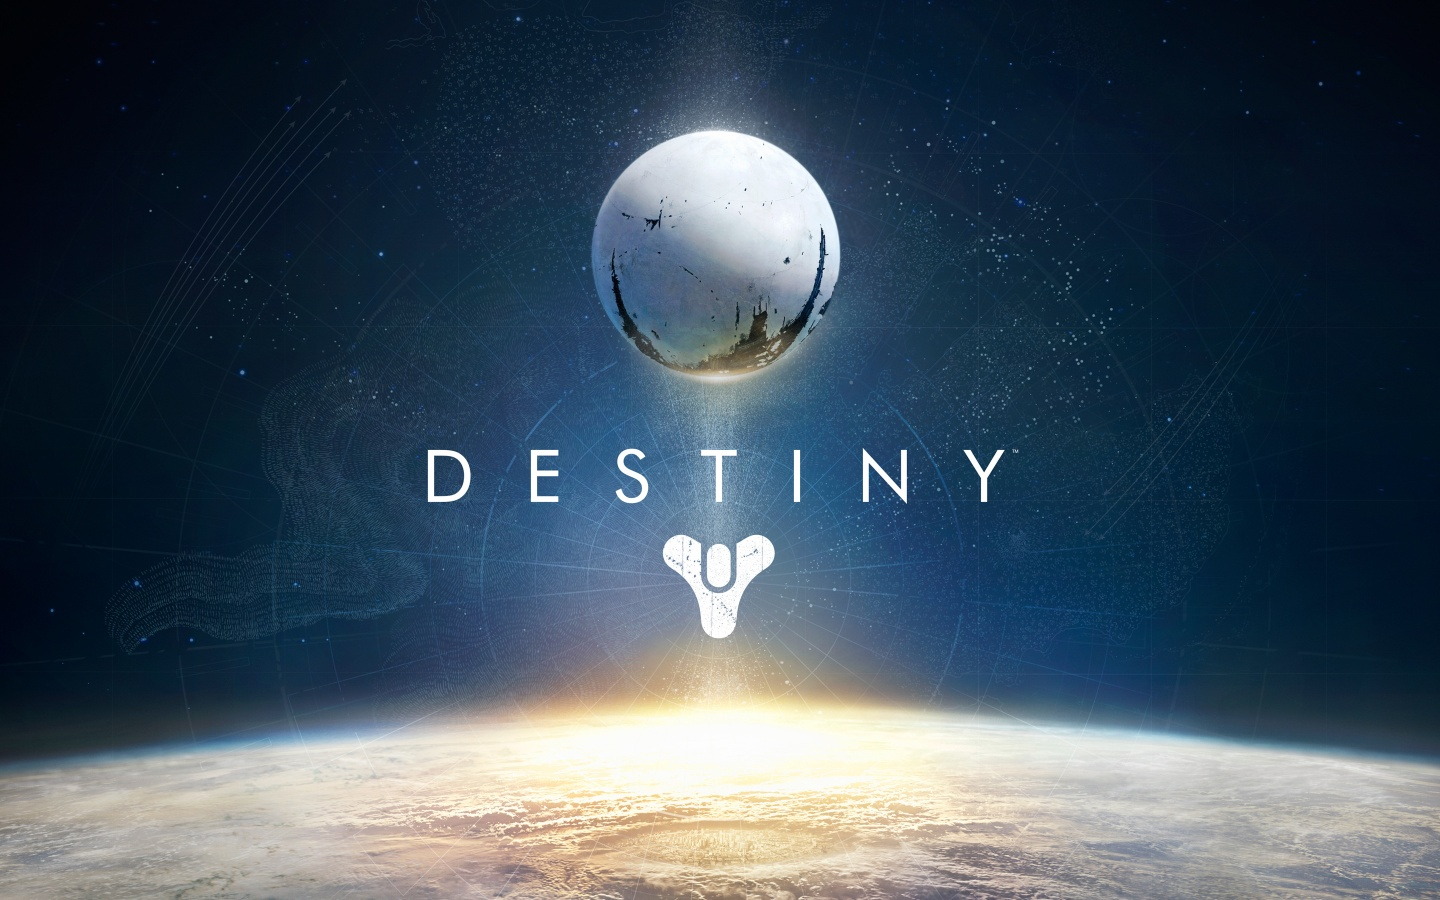 Destiny Game Wallpapers HD Wallpapers 1440x900